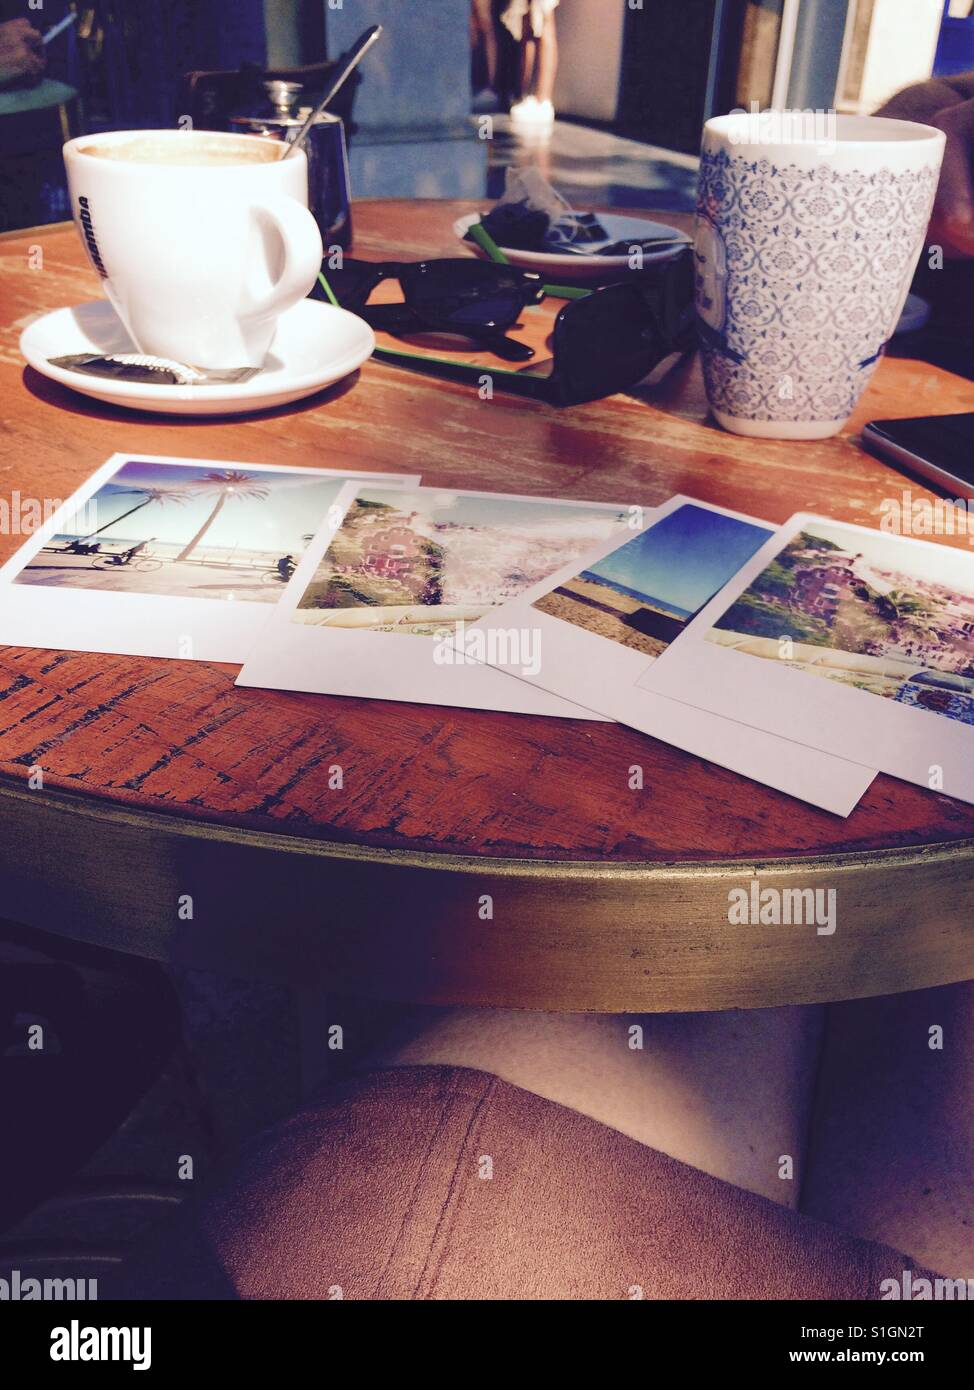 Postcards laid out on a cafe table - Stock Image